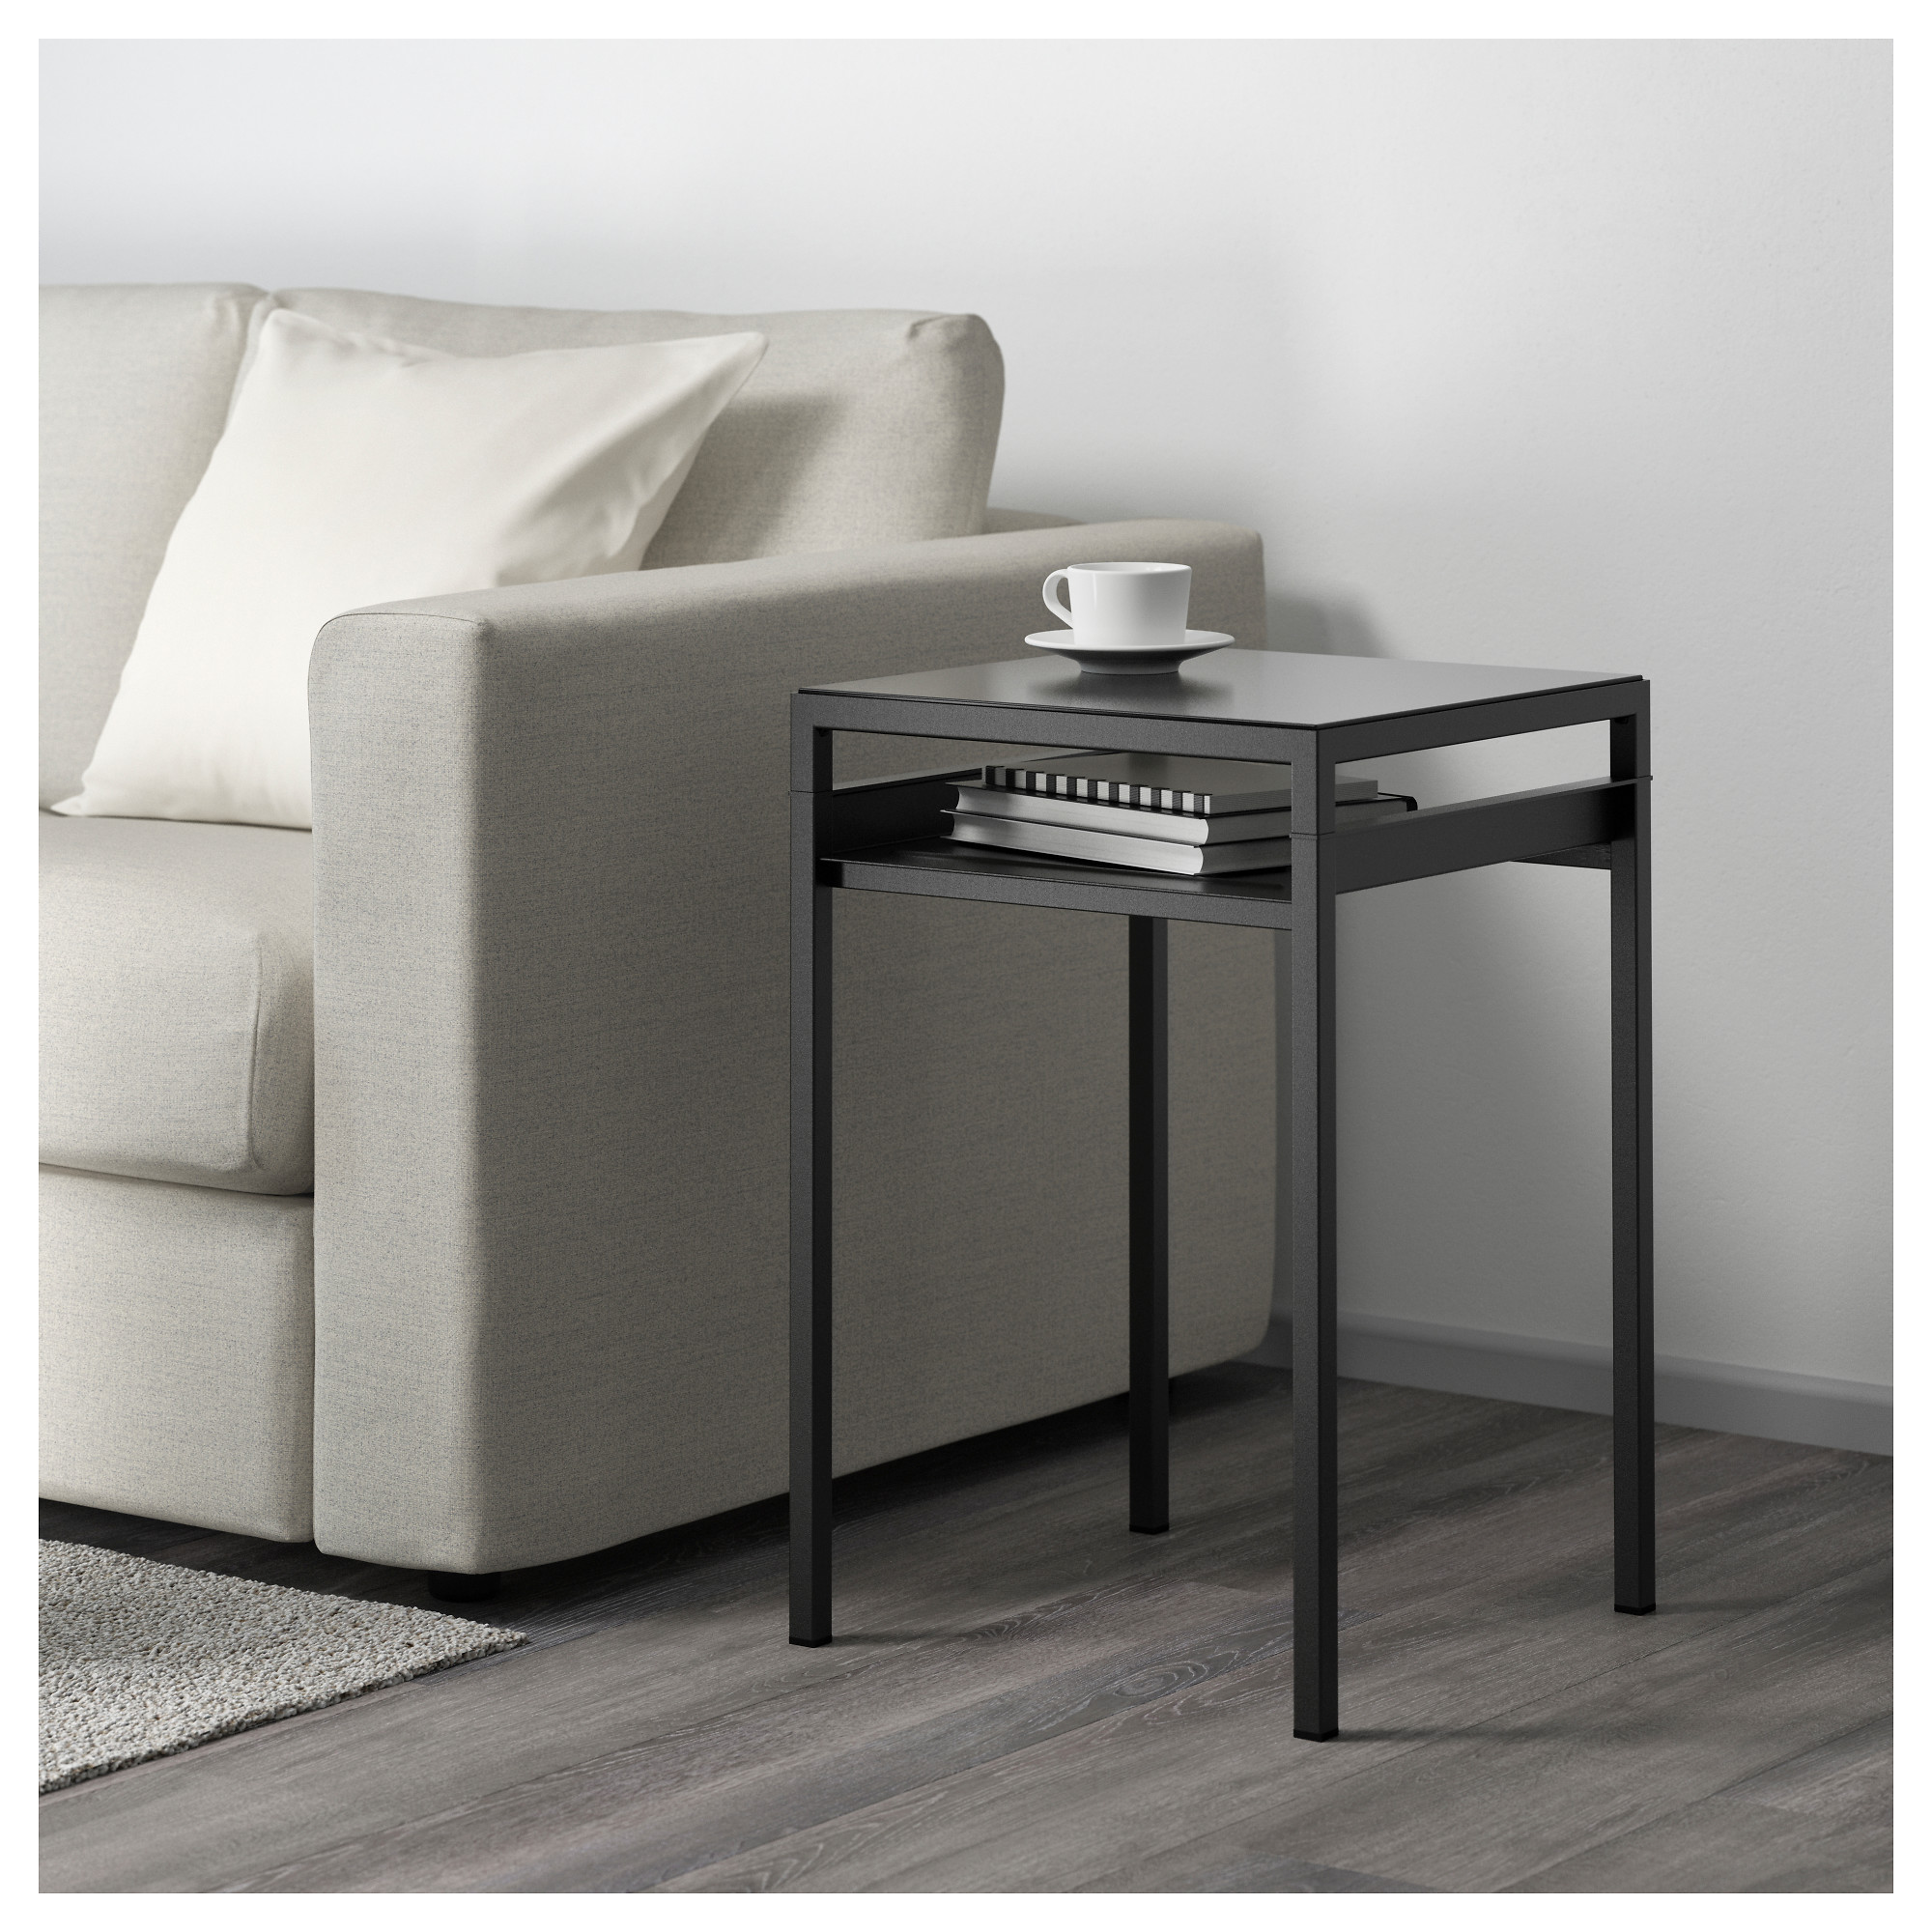 NYBODA Side Table W Reversible Table Top   White/gray   IKEA